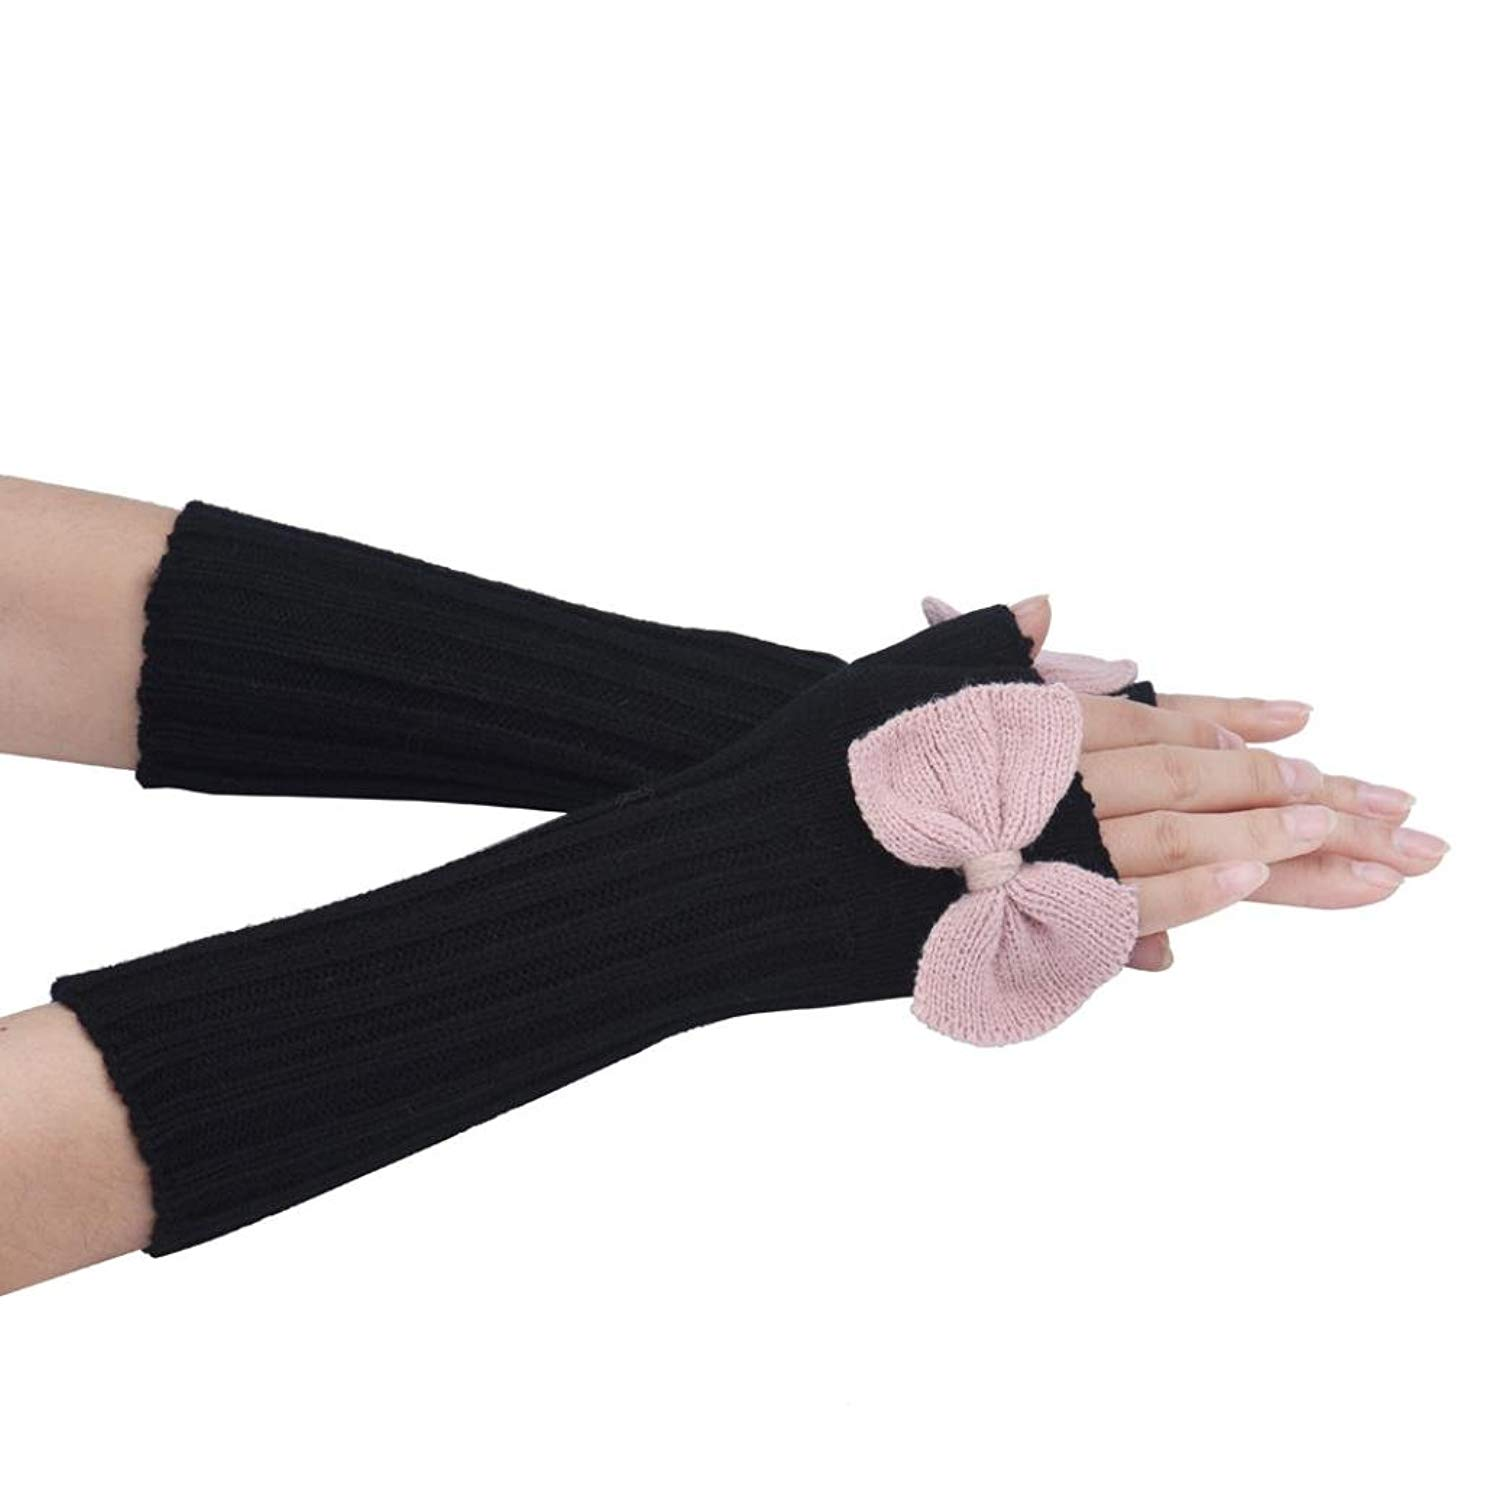 Creazy Women's Warm Winter Bowknot Knitting Half Fingerless Gloves